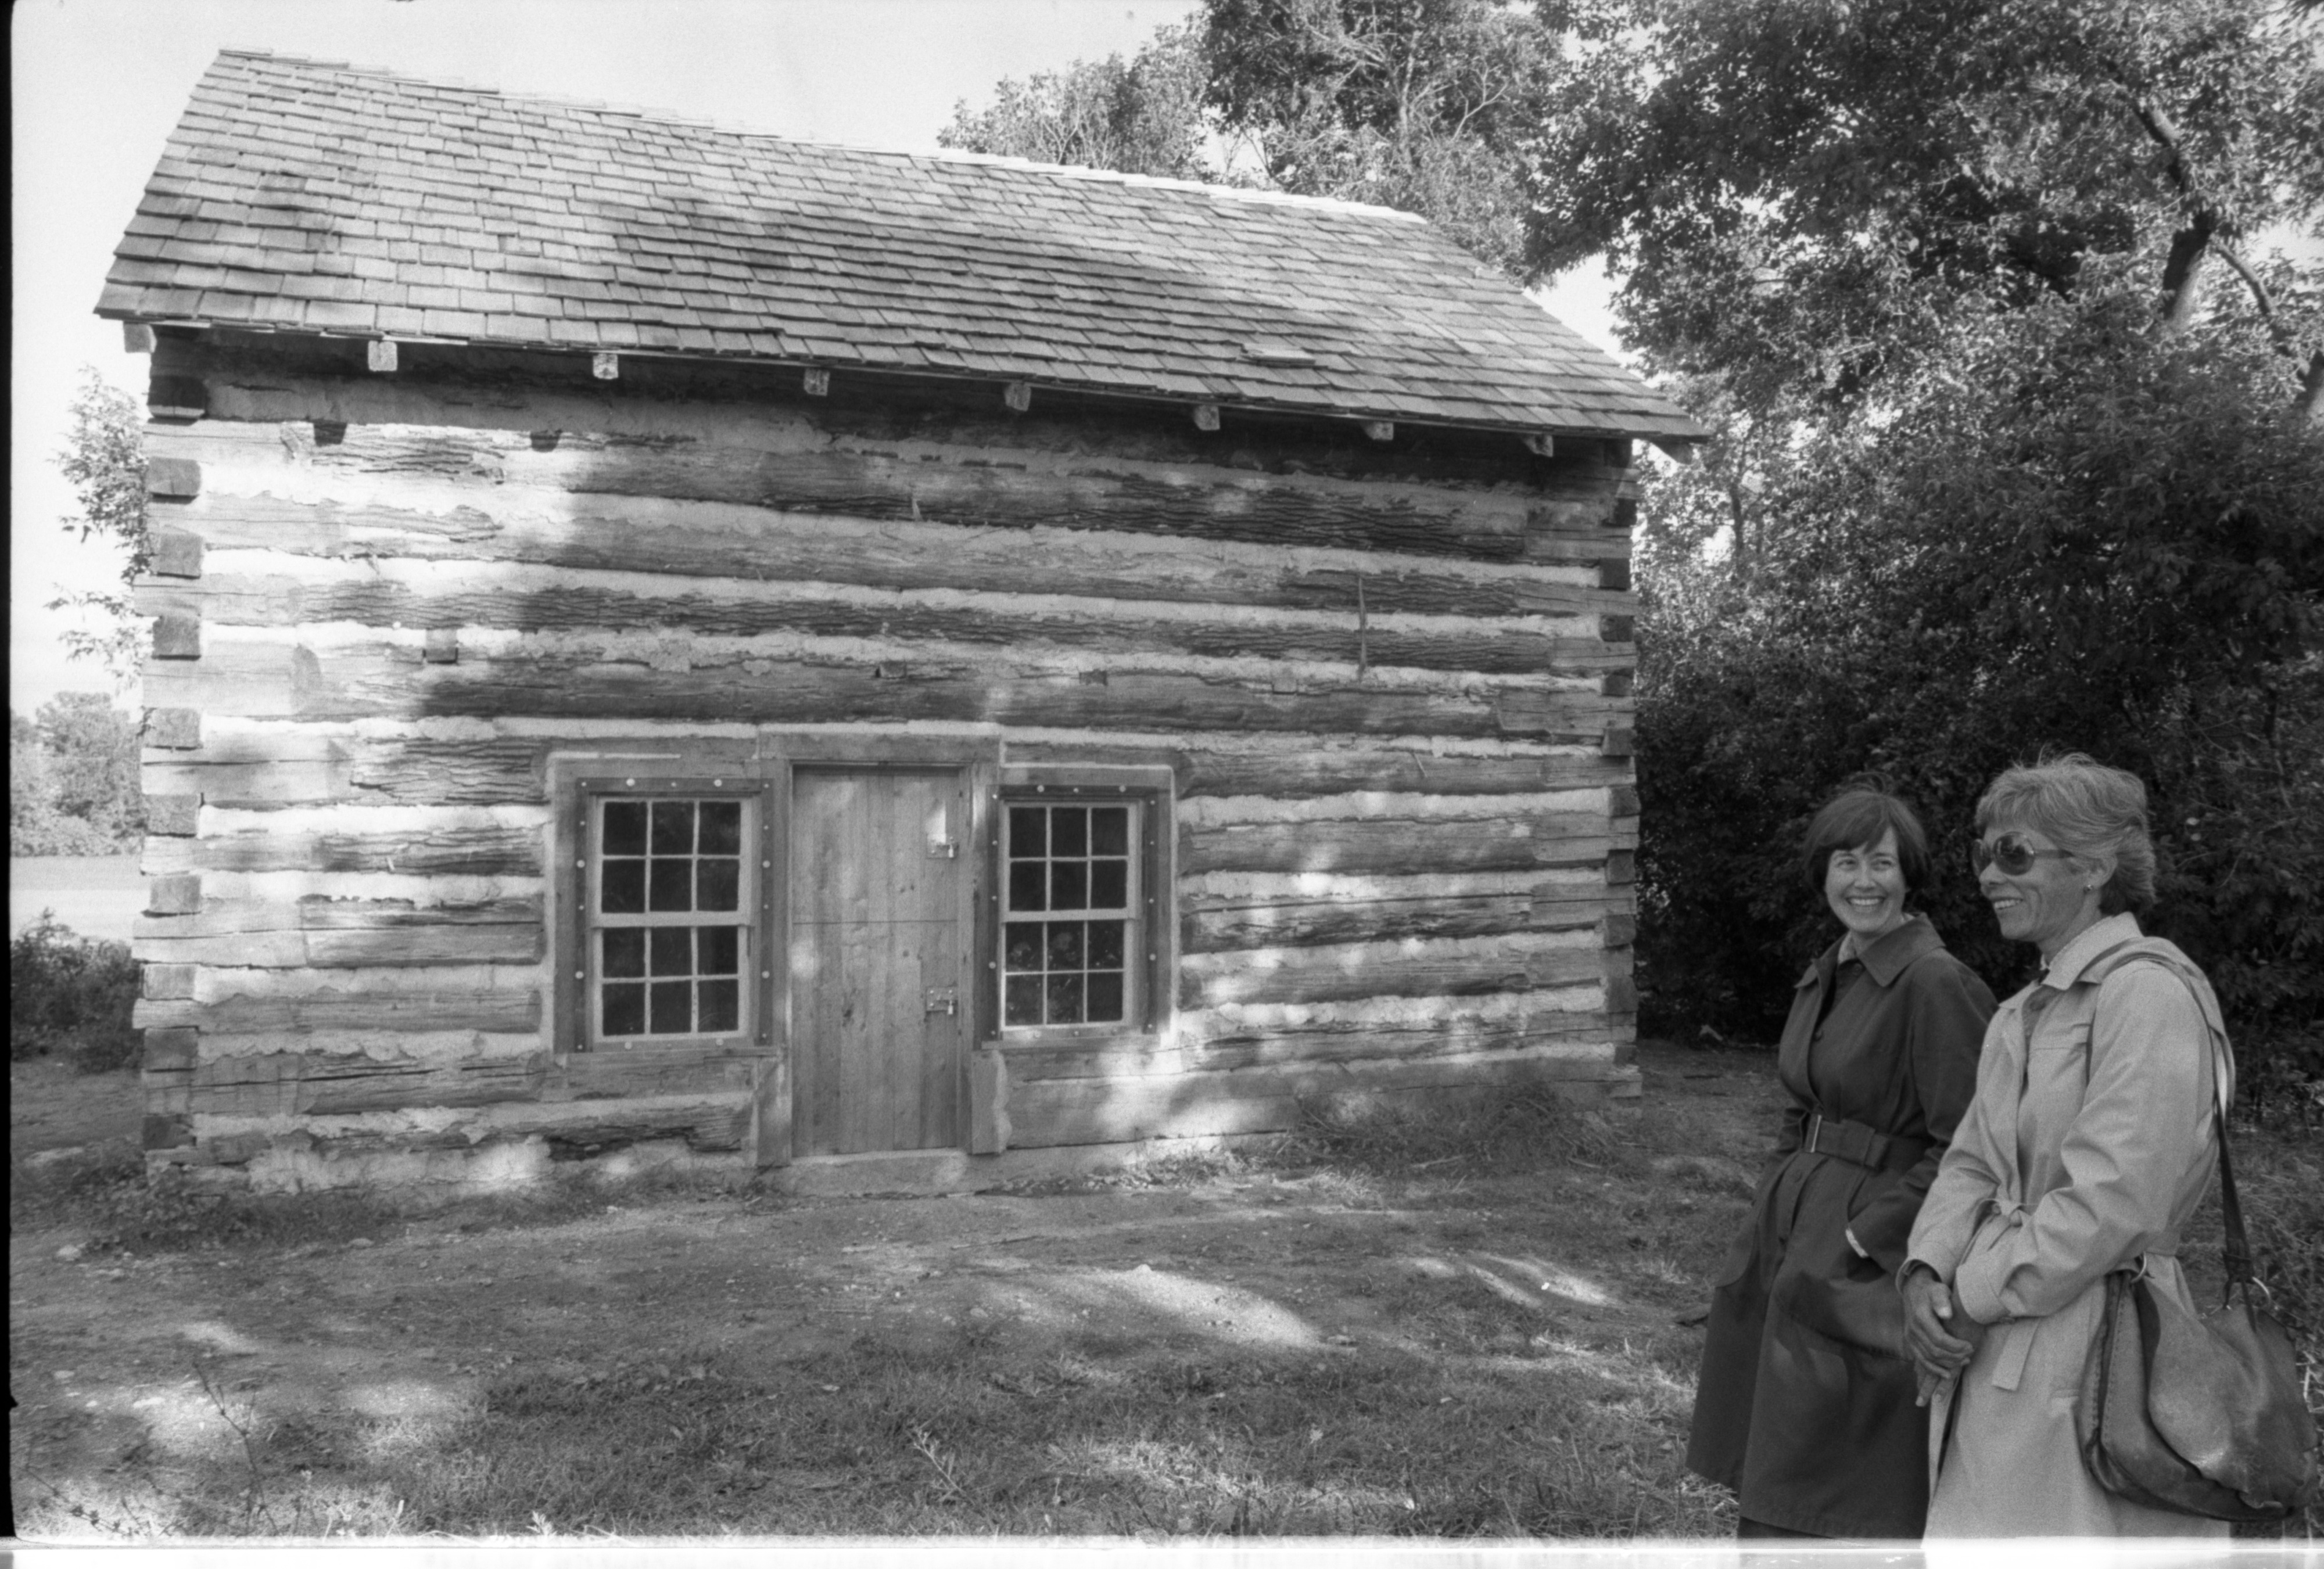 Frances Lyman, Left, & Elsie Dyke Walk By 141-Year-Old Log Cabin At Cobblestone Farm, September 27, 1981 image